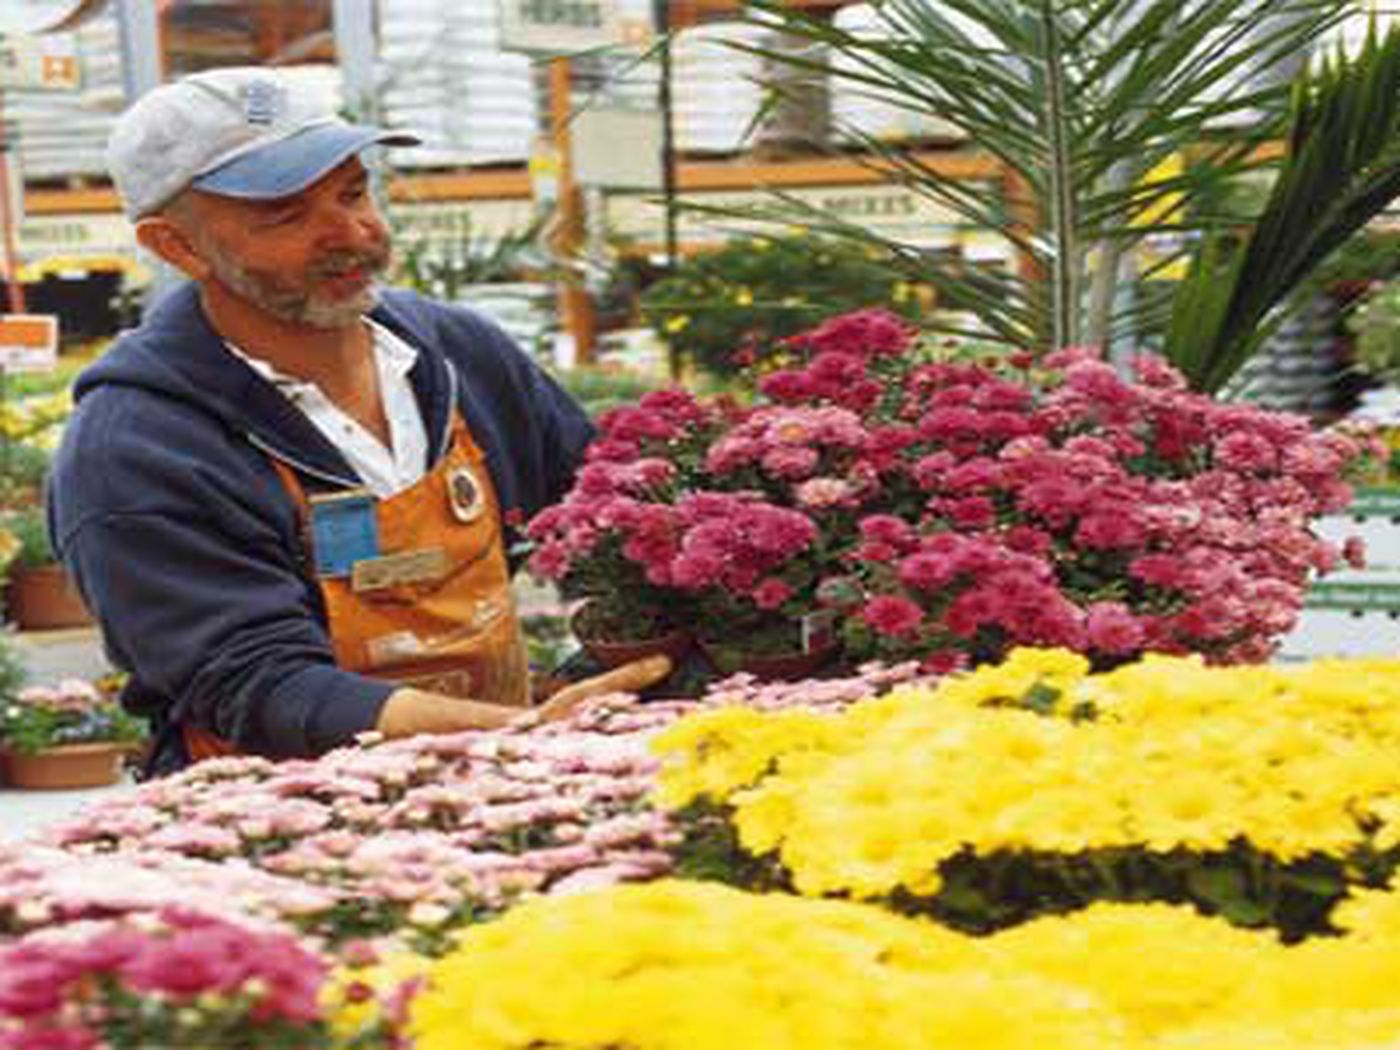 Get The Best Deal On Plants This Old House